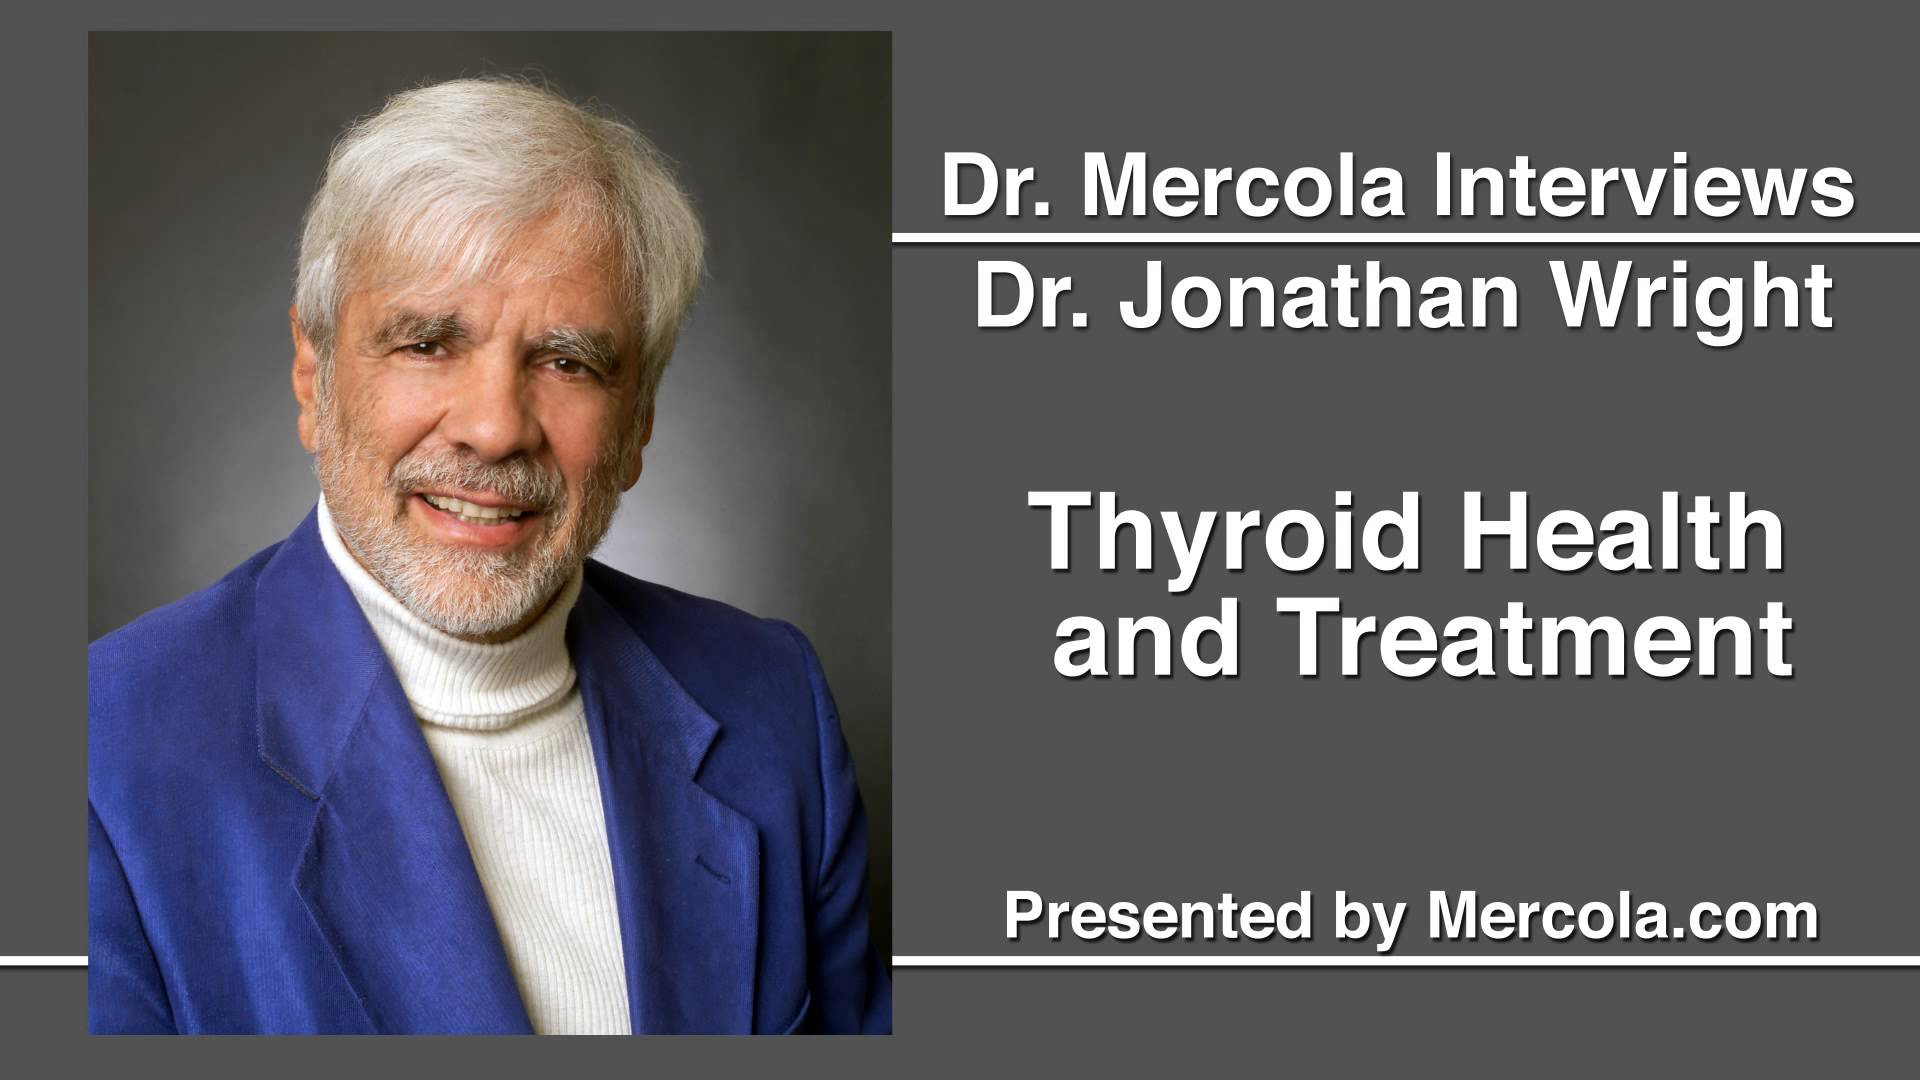 Effective Treatment Protocols for Hypothyroid and Hyperthyroid Disease